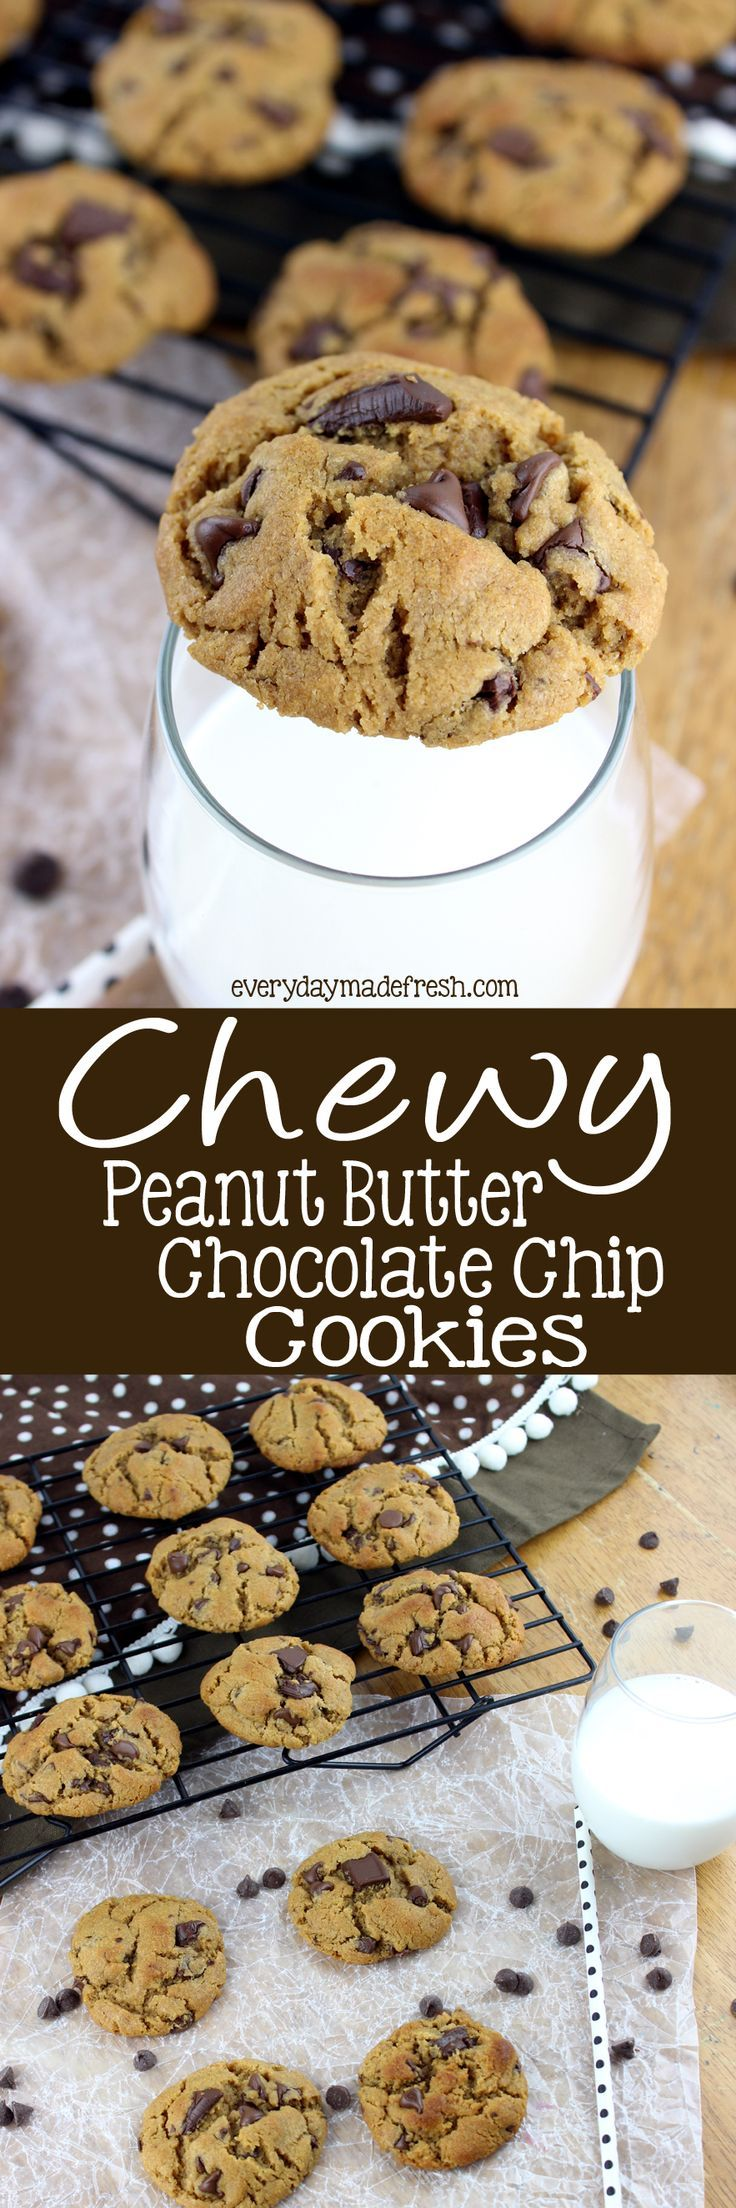 Perfectly Chew Peanut Butter Chocolate Chip Cookies are easy to make, flour free, and have that perfect chewy cookie texture! | Everydaymadefresh.com http://www.everydaymadefresh.com/chewy-peanut-butter-chocolate-chip-cookies-3/